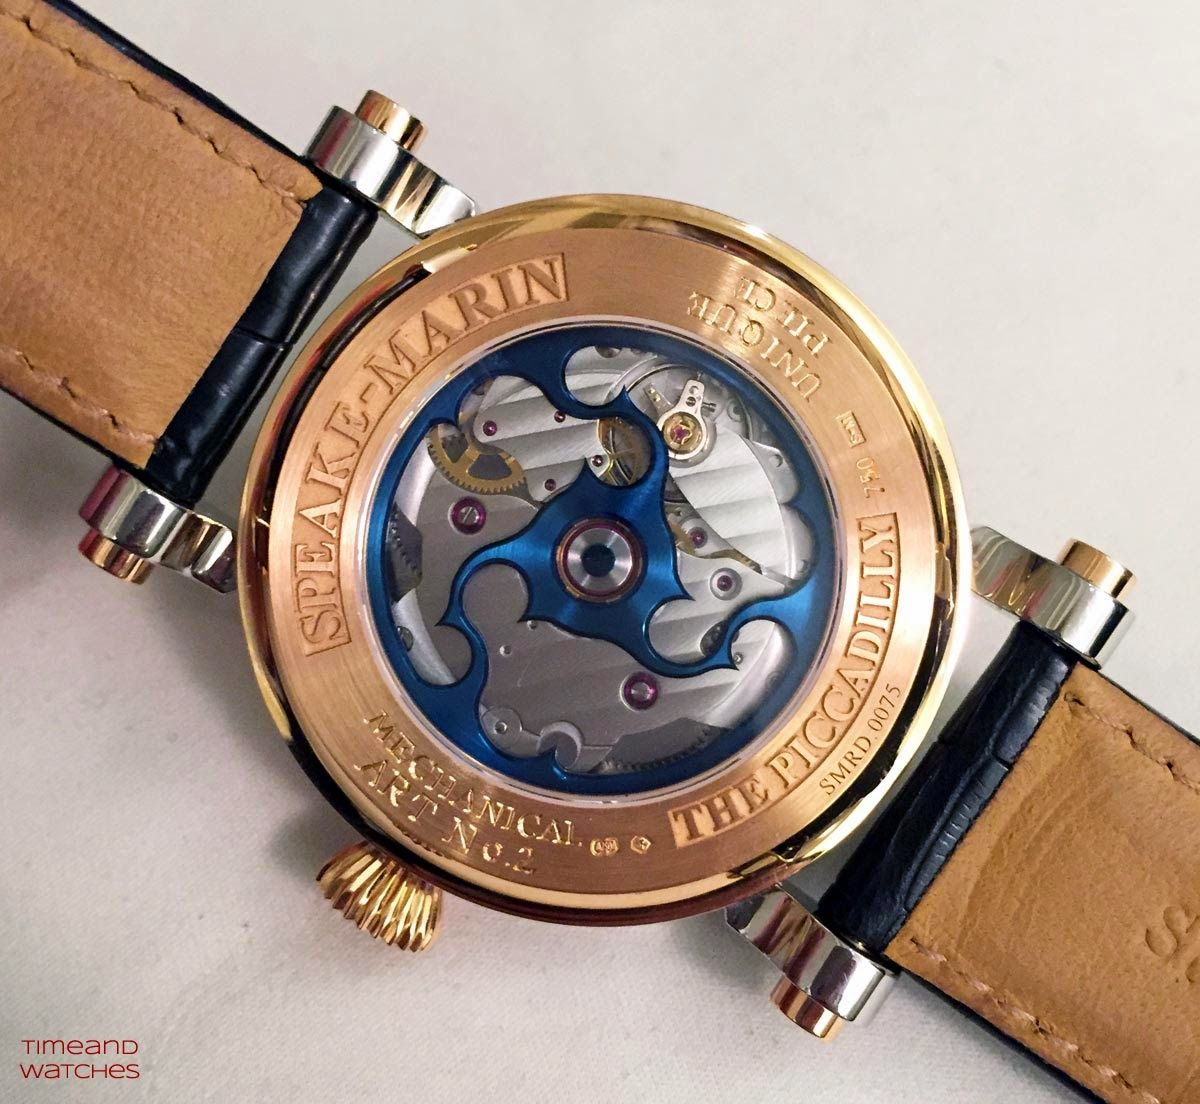 Speake-Marin Jumping Hours | Time and Watches